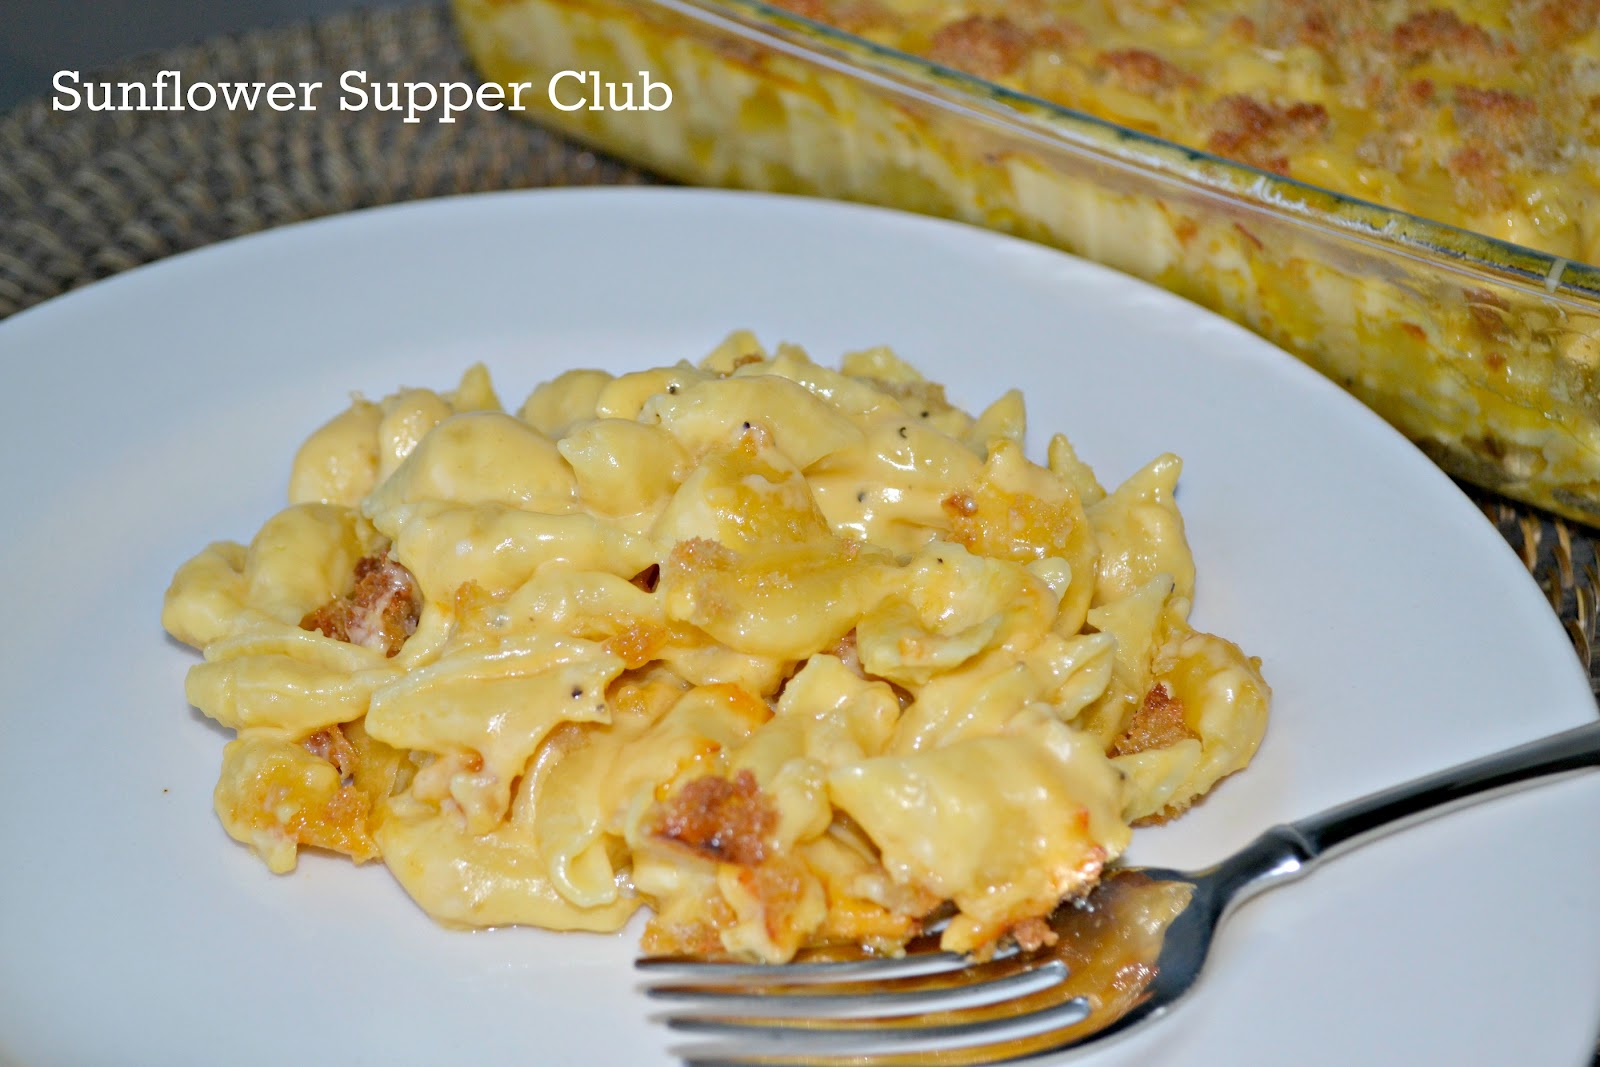 Sunflower Supper Club: Nanny's Creamy Baked Macaroni & Cheese